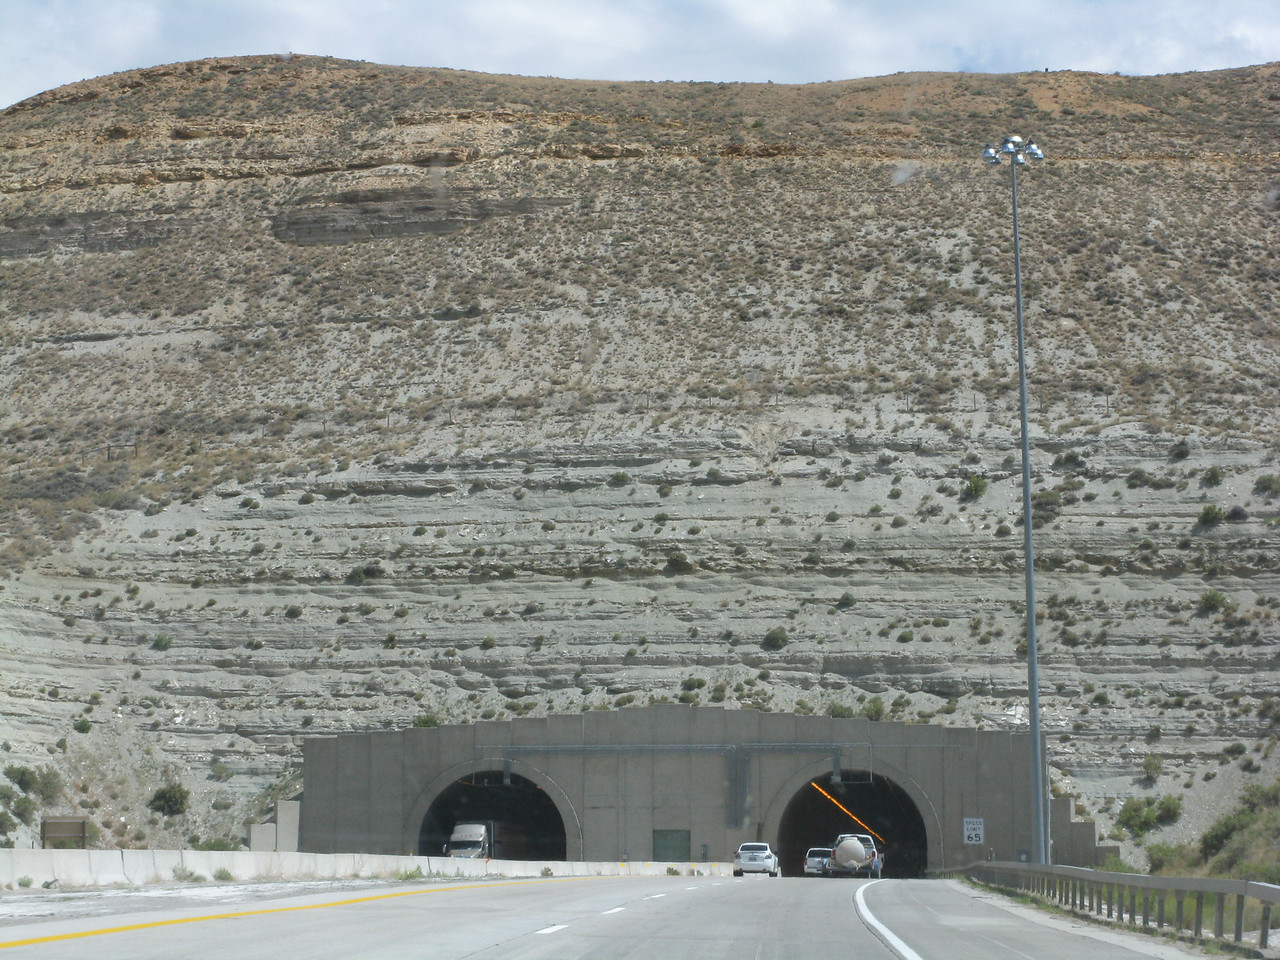 A short auto tunnel on Interstate 80 in western Wyoming.